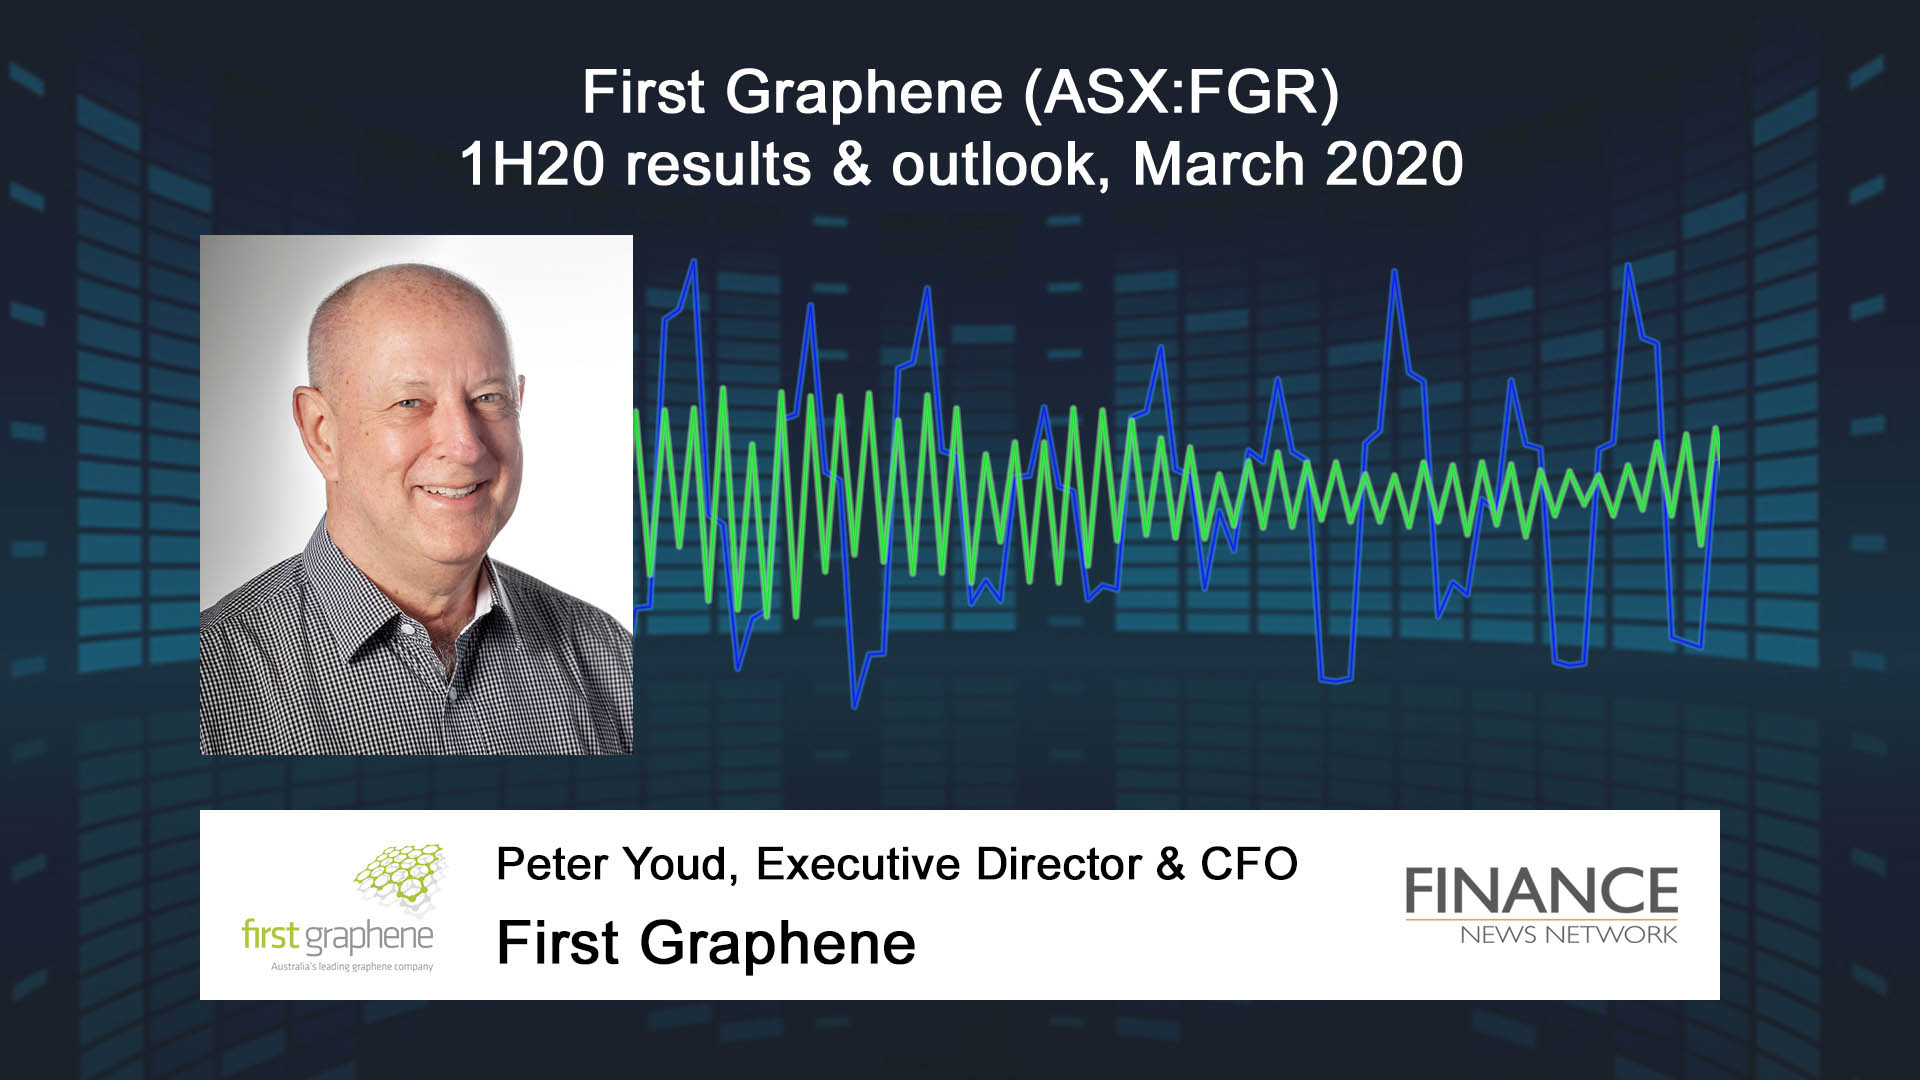 First Graphene (ASX:FGR) 1H20 results & outlook